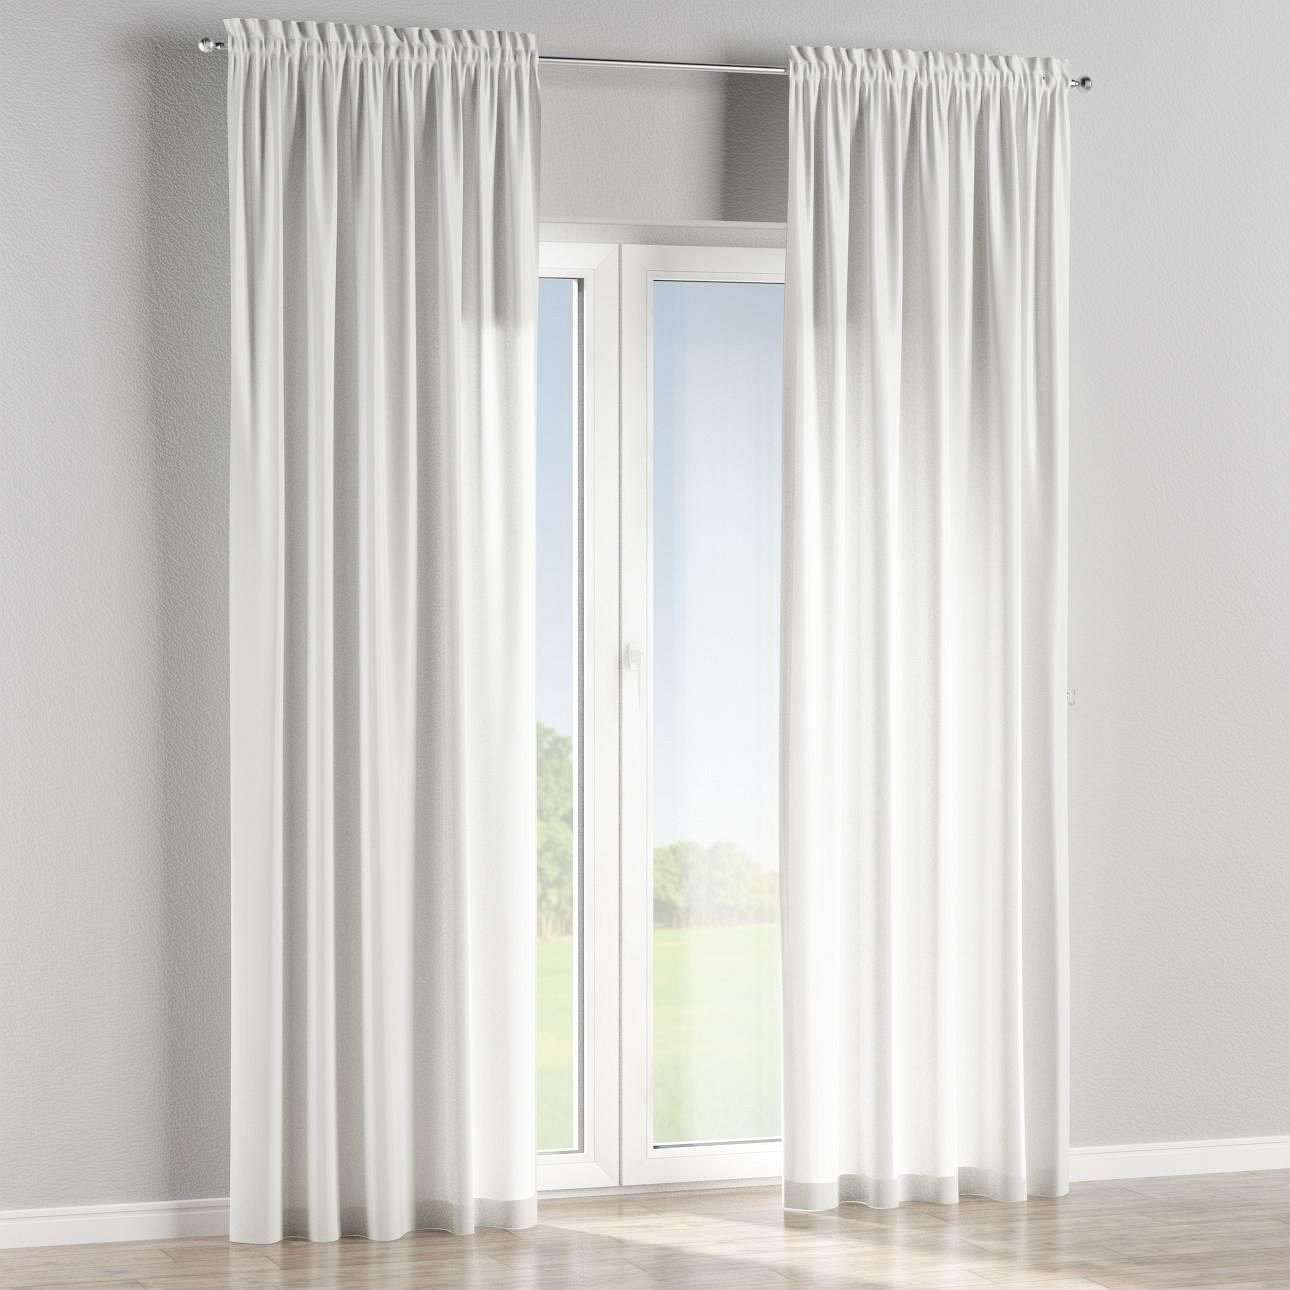 Slot and frill lined curtains in collection Venice, fabric: 140-53